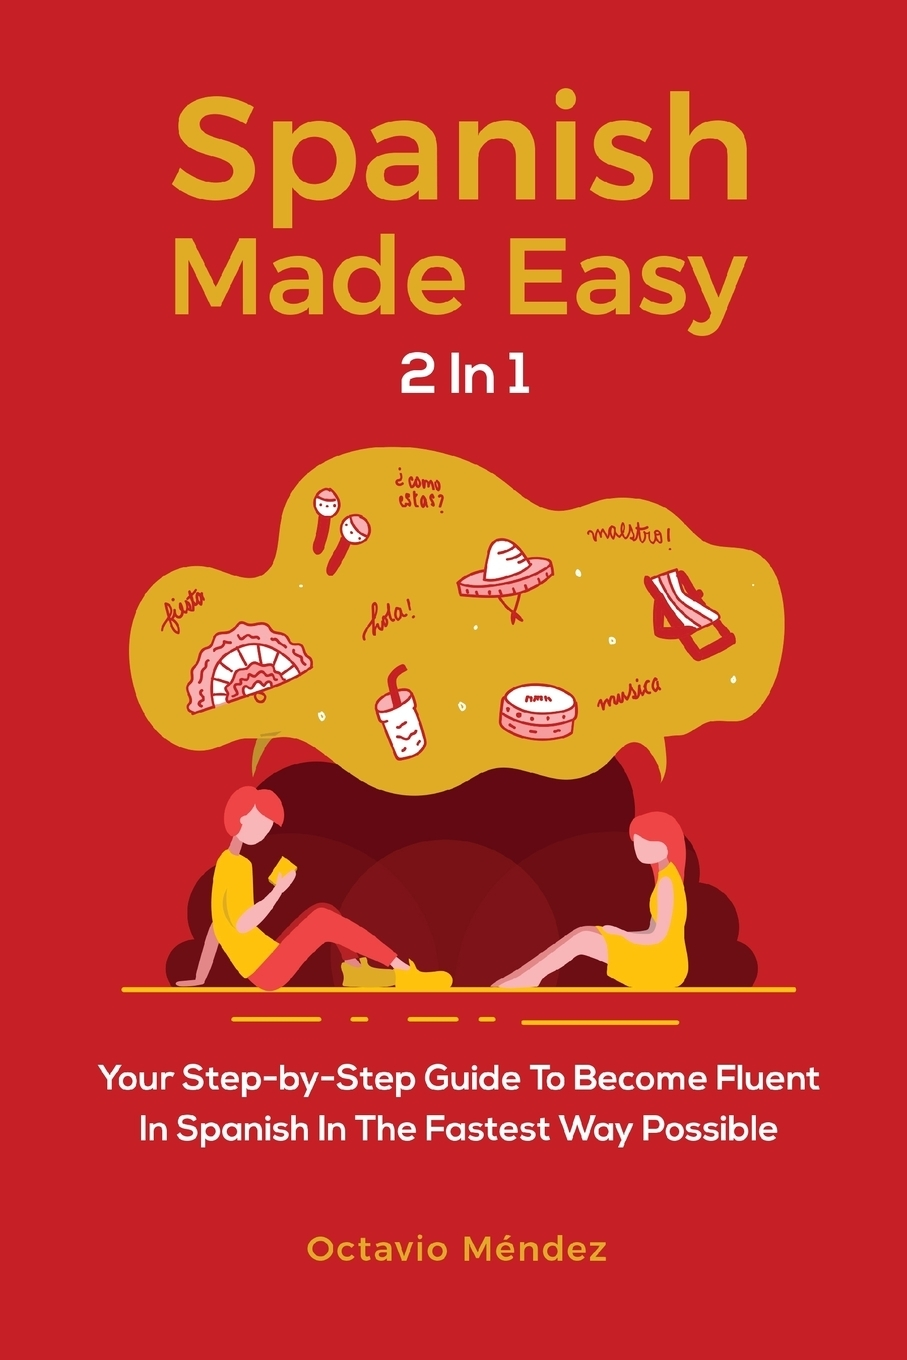 Spanish Made Easy 2 In 1. Your Step-by-Step Guide To Become Fluent In Spanish In The Fastest Way Possible. Octavio M?ndez